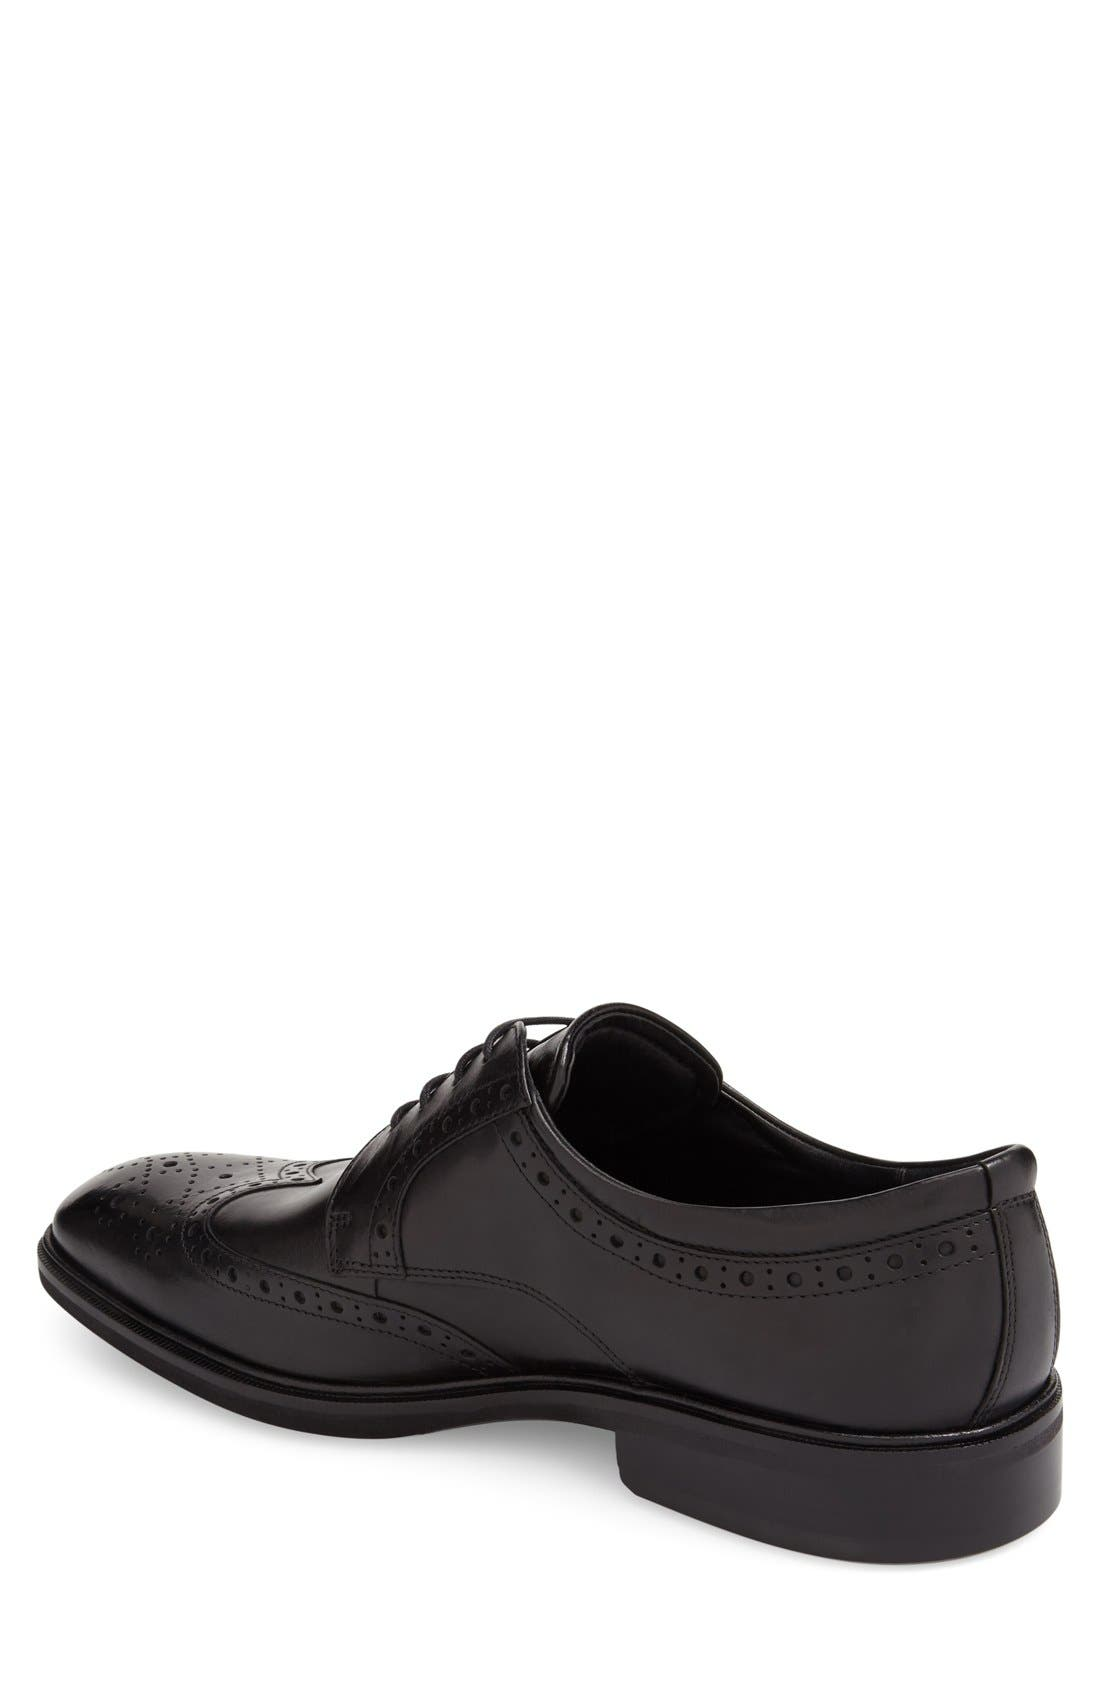 Alternate Image 2  - ECCO 'Illinois' Wingtip Derby (Men)